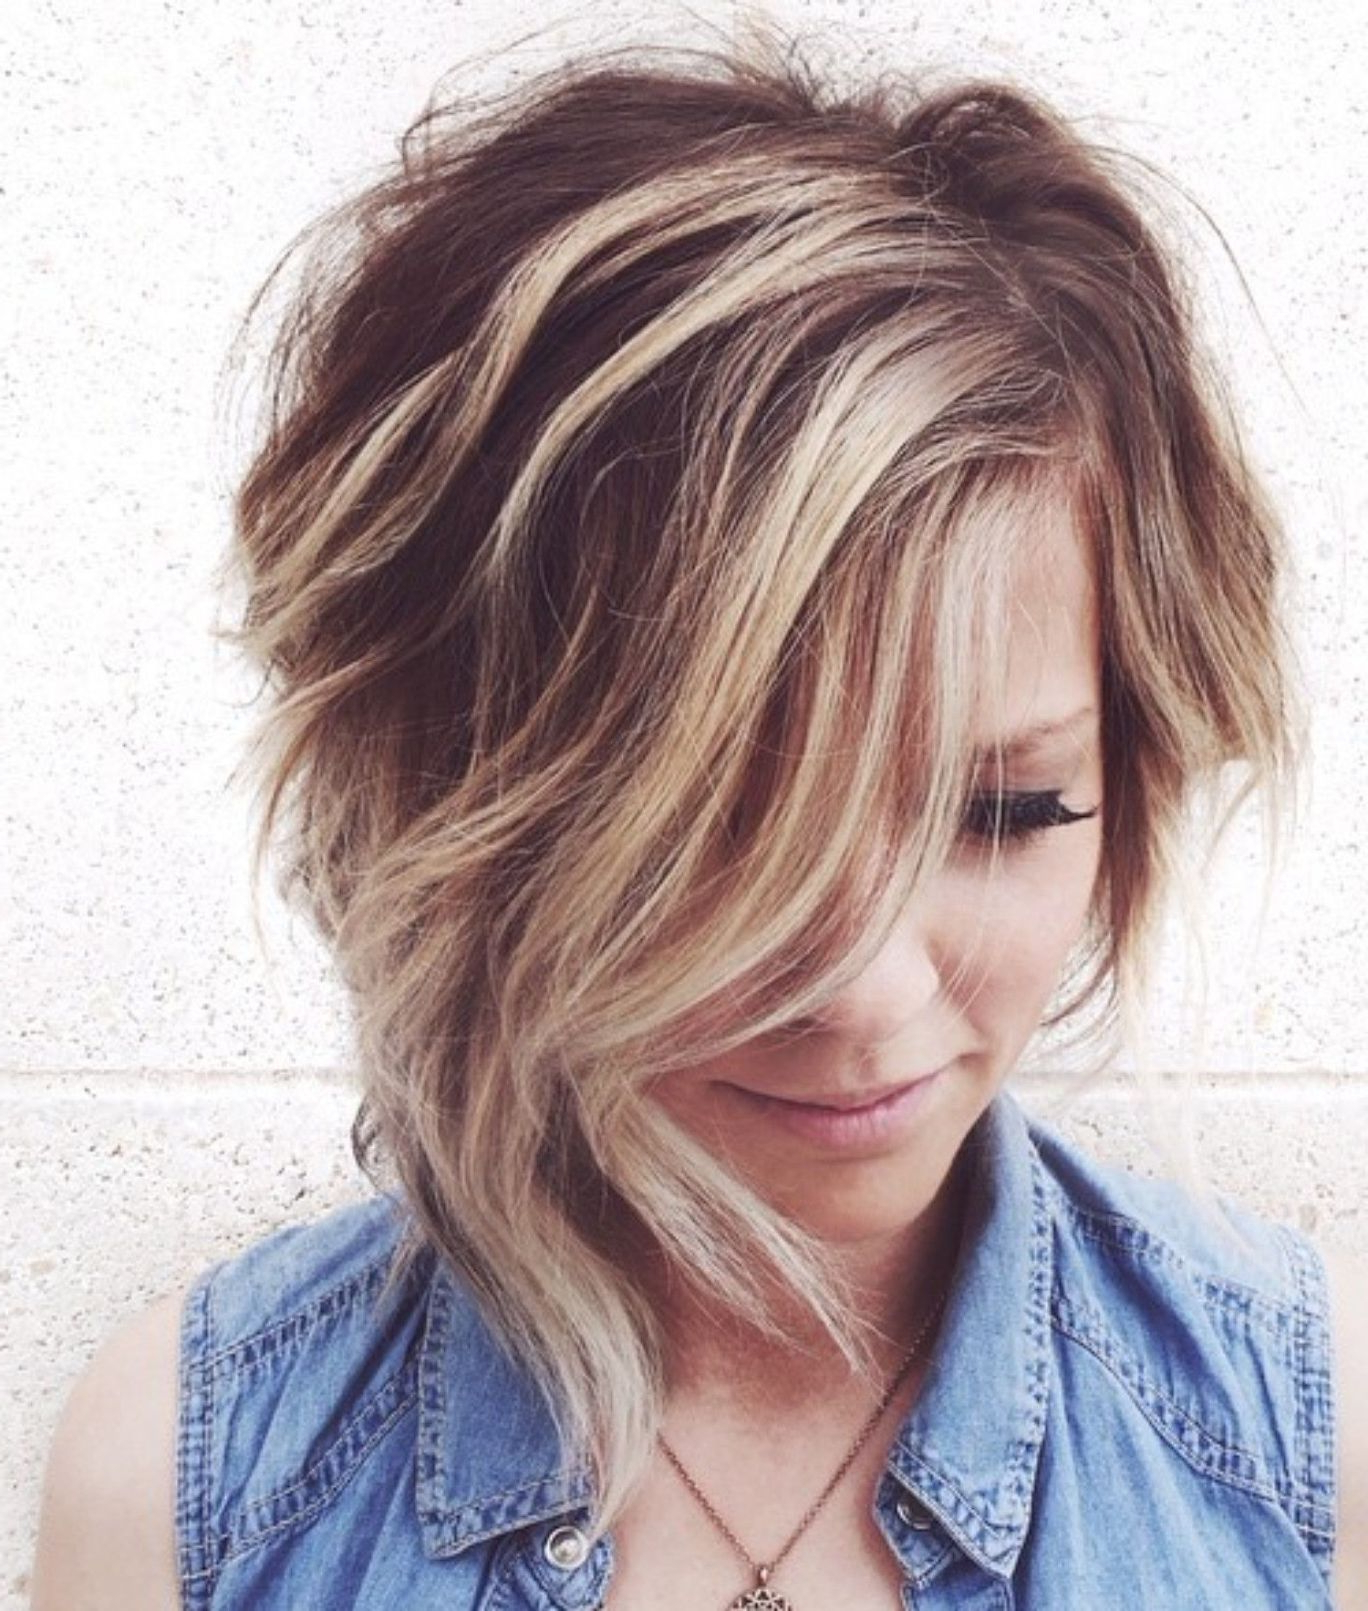 100 Mind Blowing Short Hairstyles For Fine Hair In 2018 | Bob Hair Intended For Side Parted Asymmetrical Gray Bob Hairstyles (View 5 of 20)